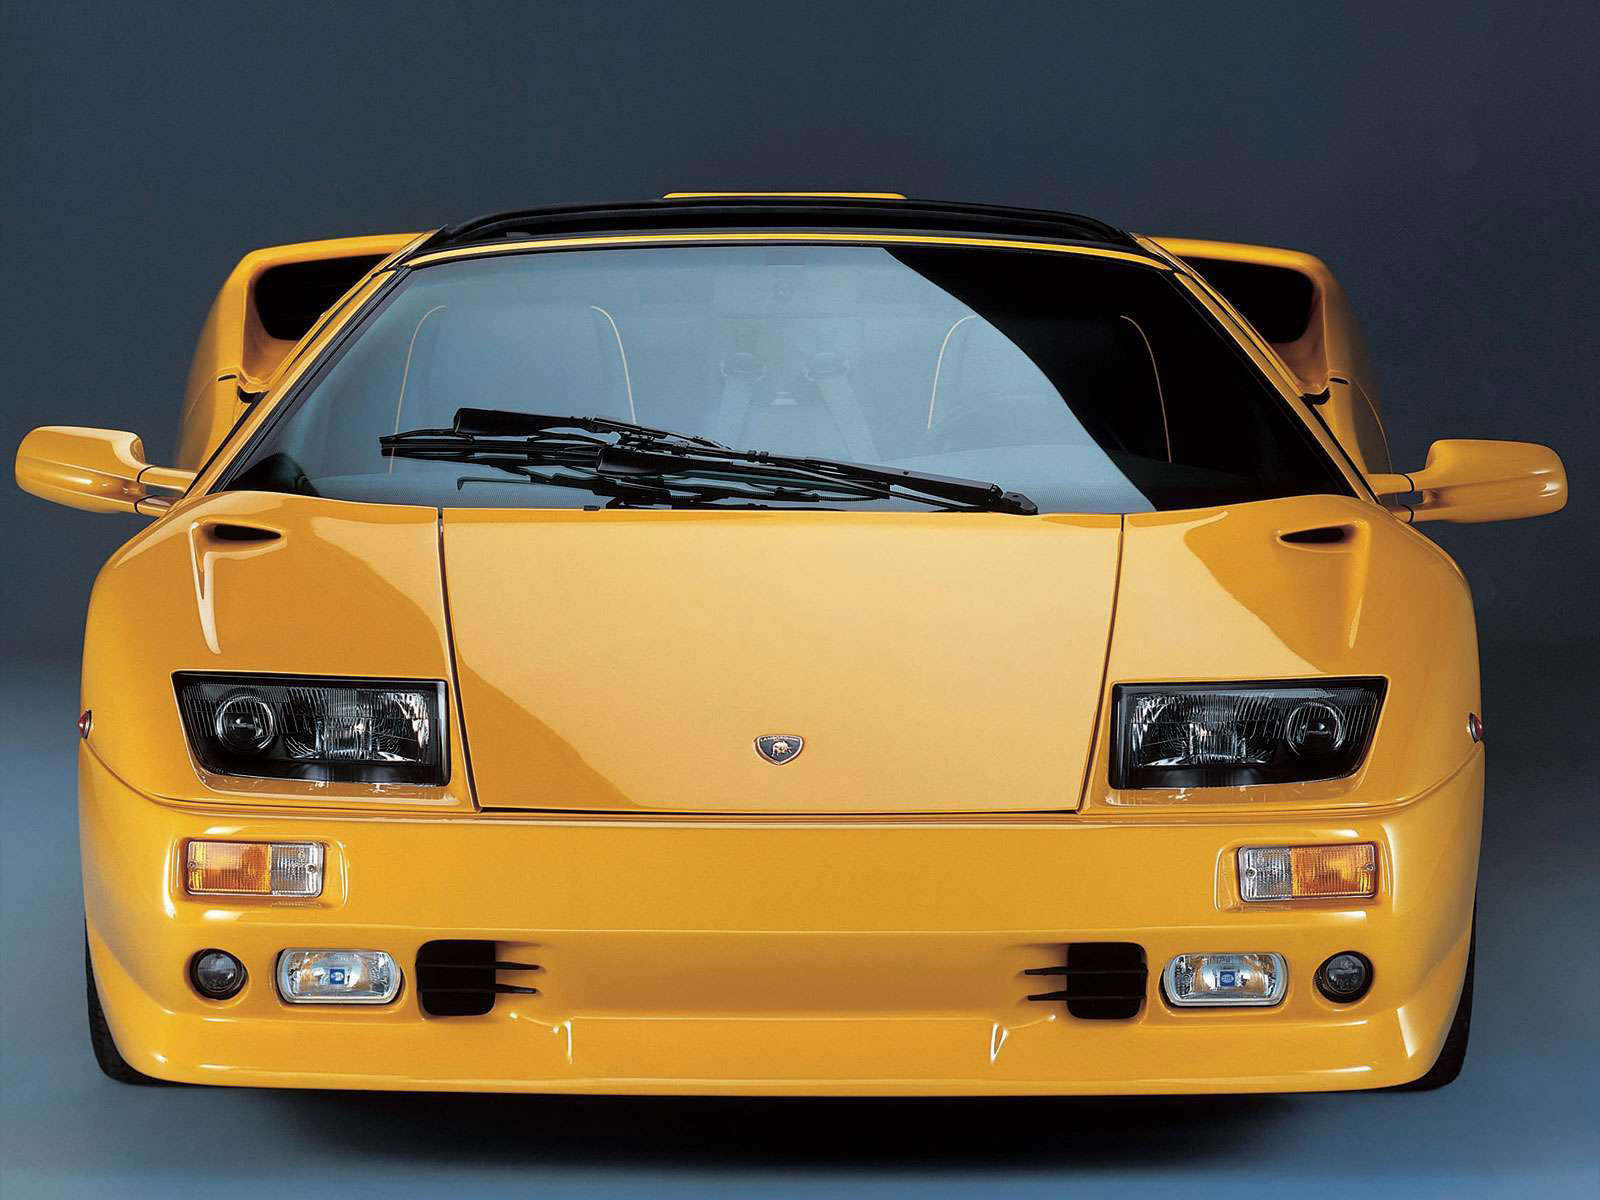 1996 LAMBORGHINI Diablo Roadster accident lawyers info-2.bp.blogspot.com